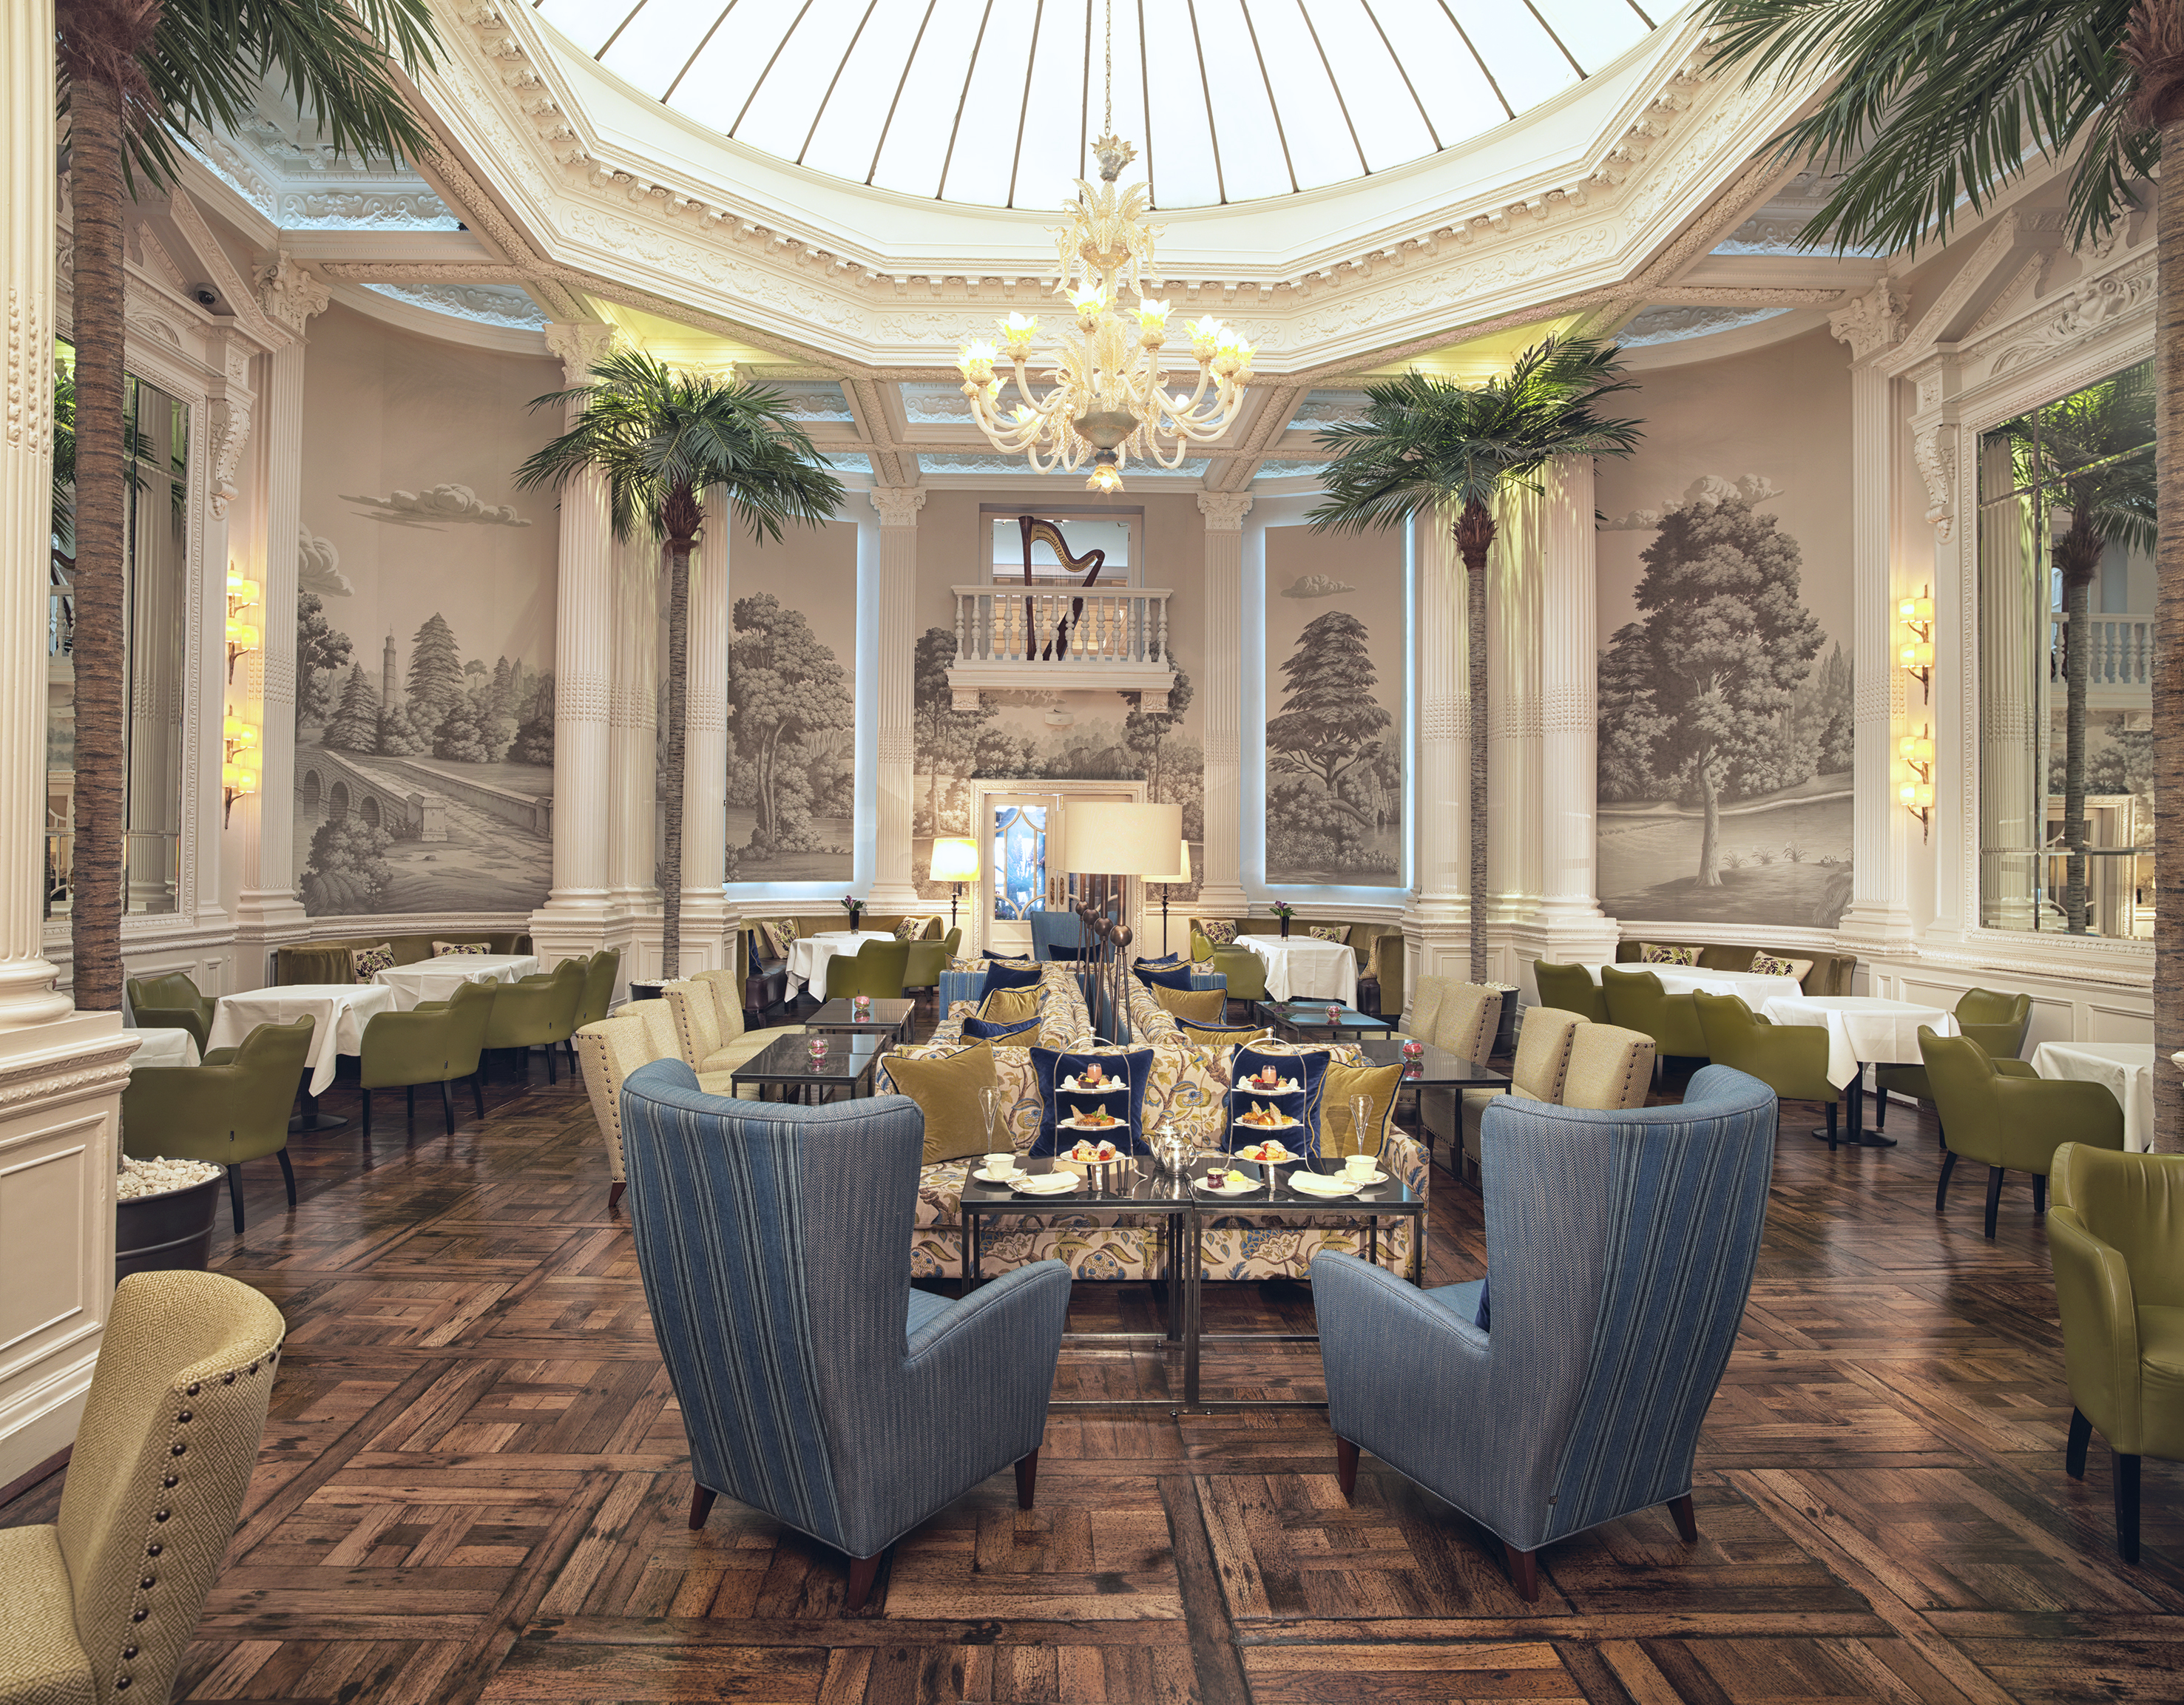 Palm Court at The Balmoral - Edinburgh